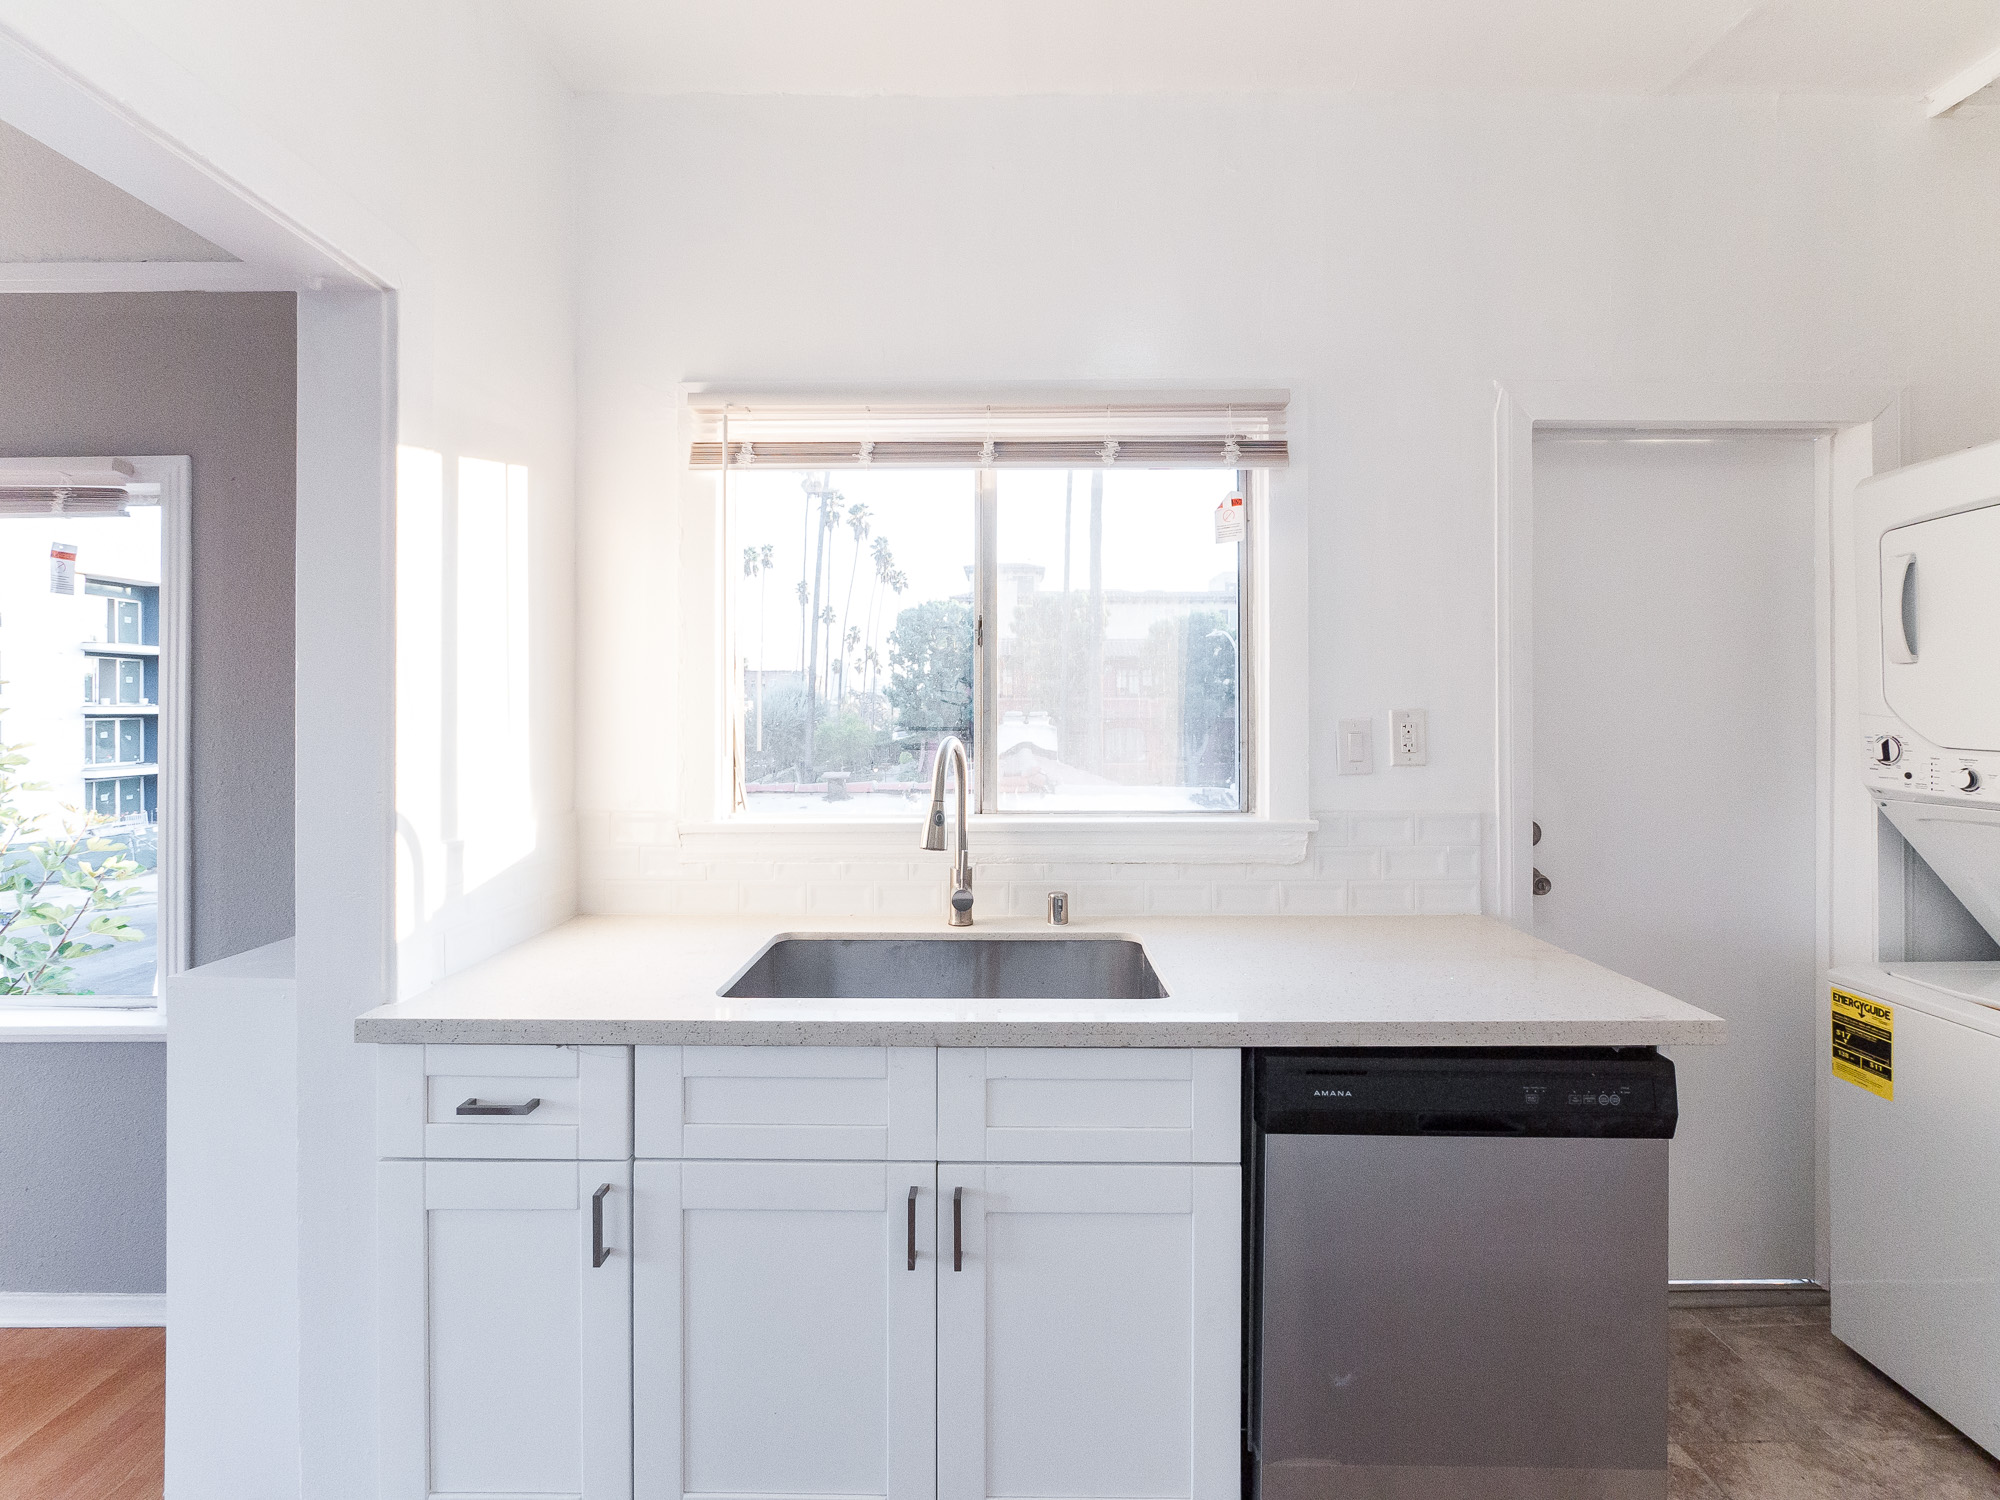 California Dreamin'! 1920's Immaculate, Vintage Building - JUST Renovated, Super Bright- Upper Unit -Washer/Dryer, Dishwasher-Great Location!